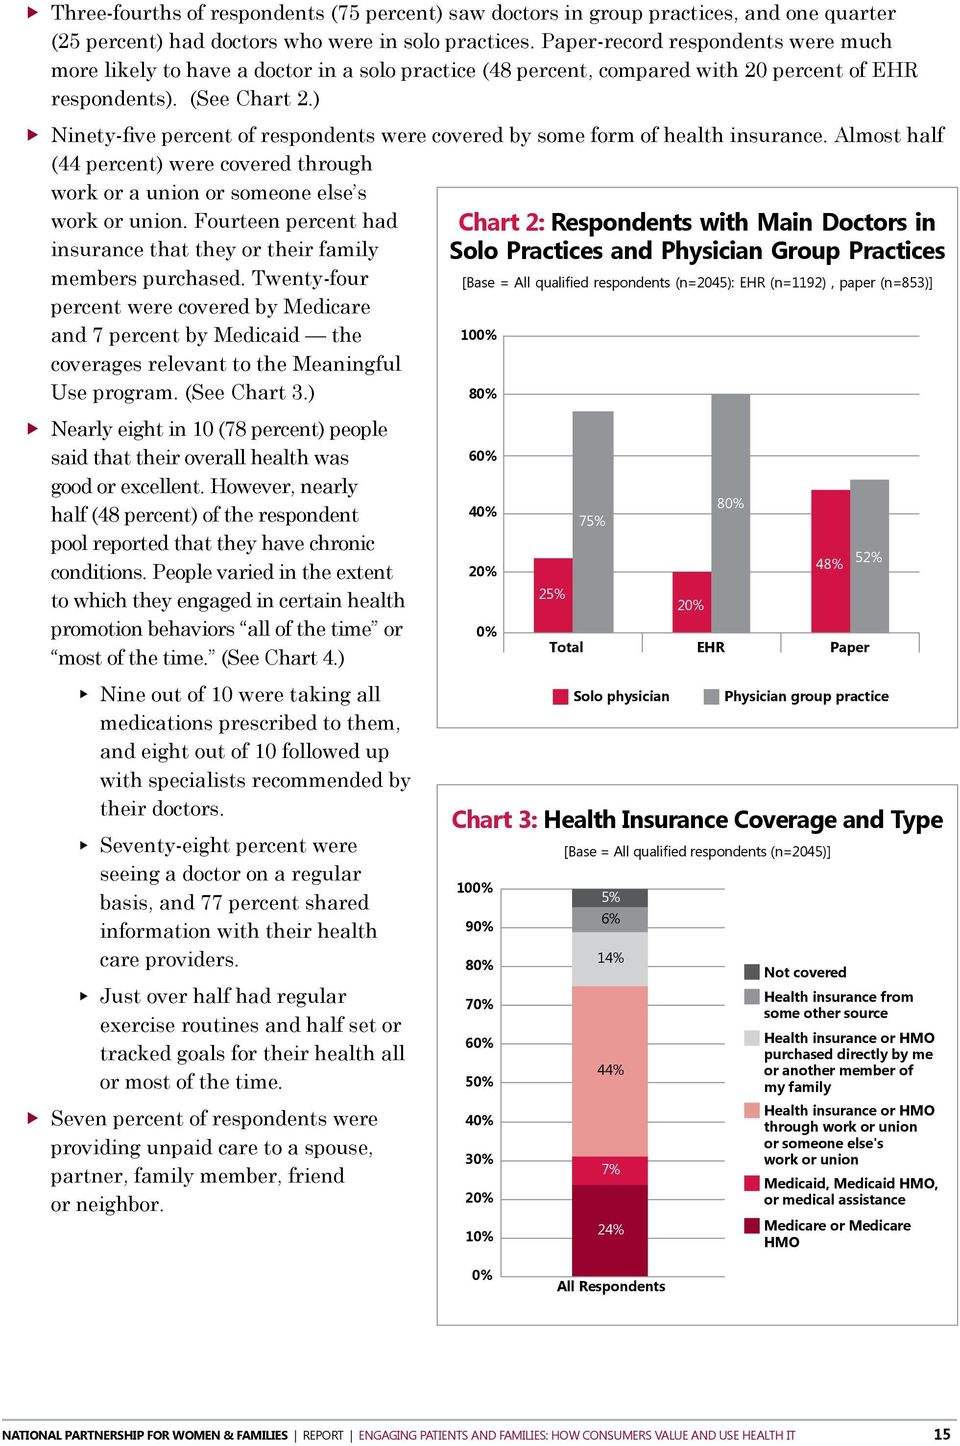 ) XXNinety-five percent of respondents were covered by some form of health insurance. Almost half (44 percent) were covered through work or a union or someone else s work or union.